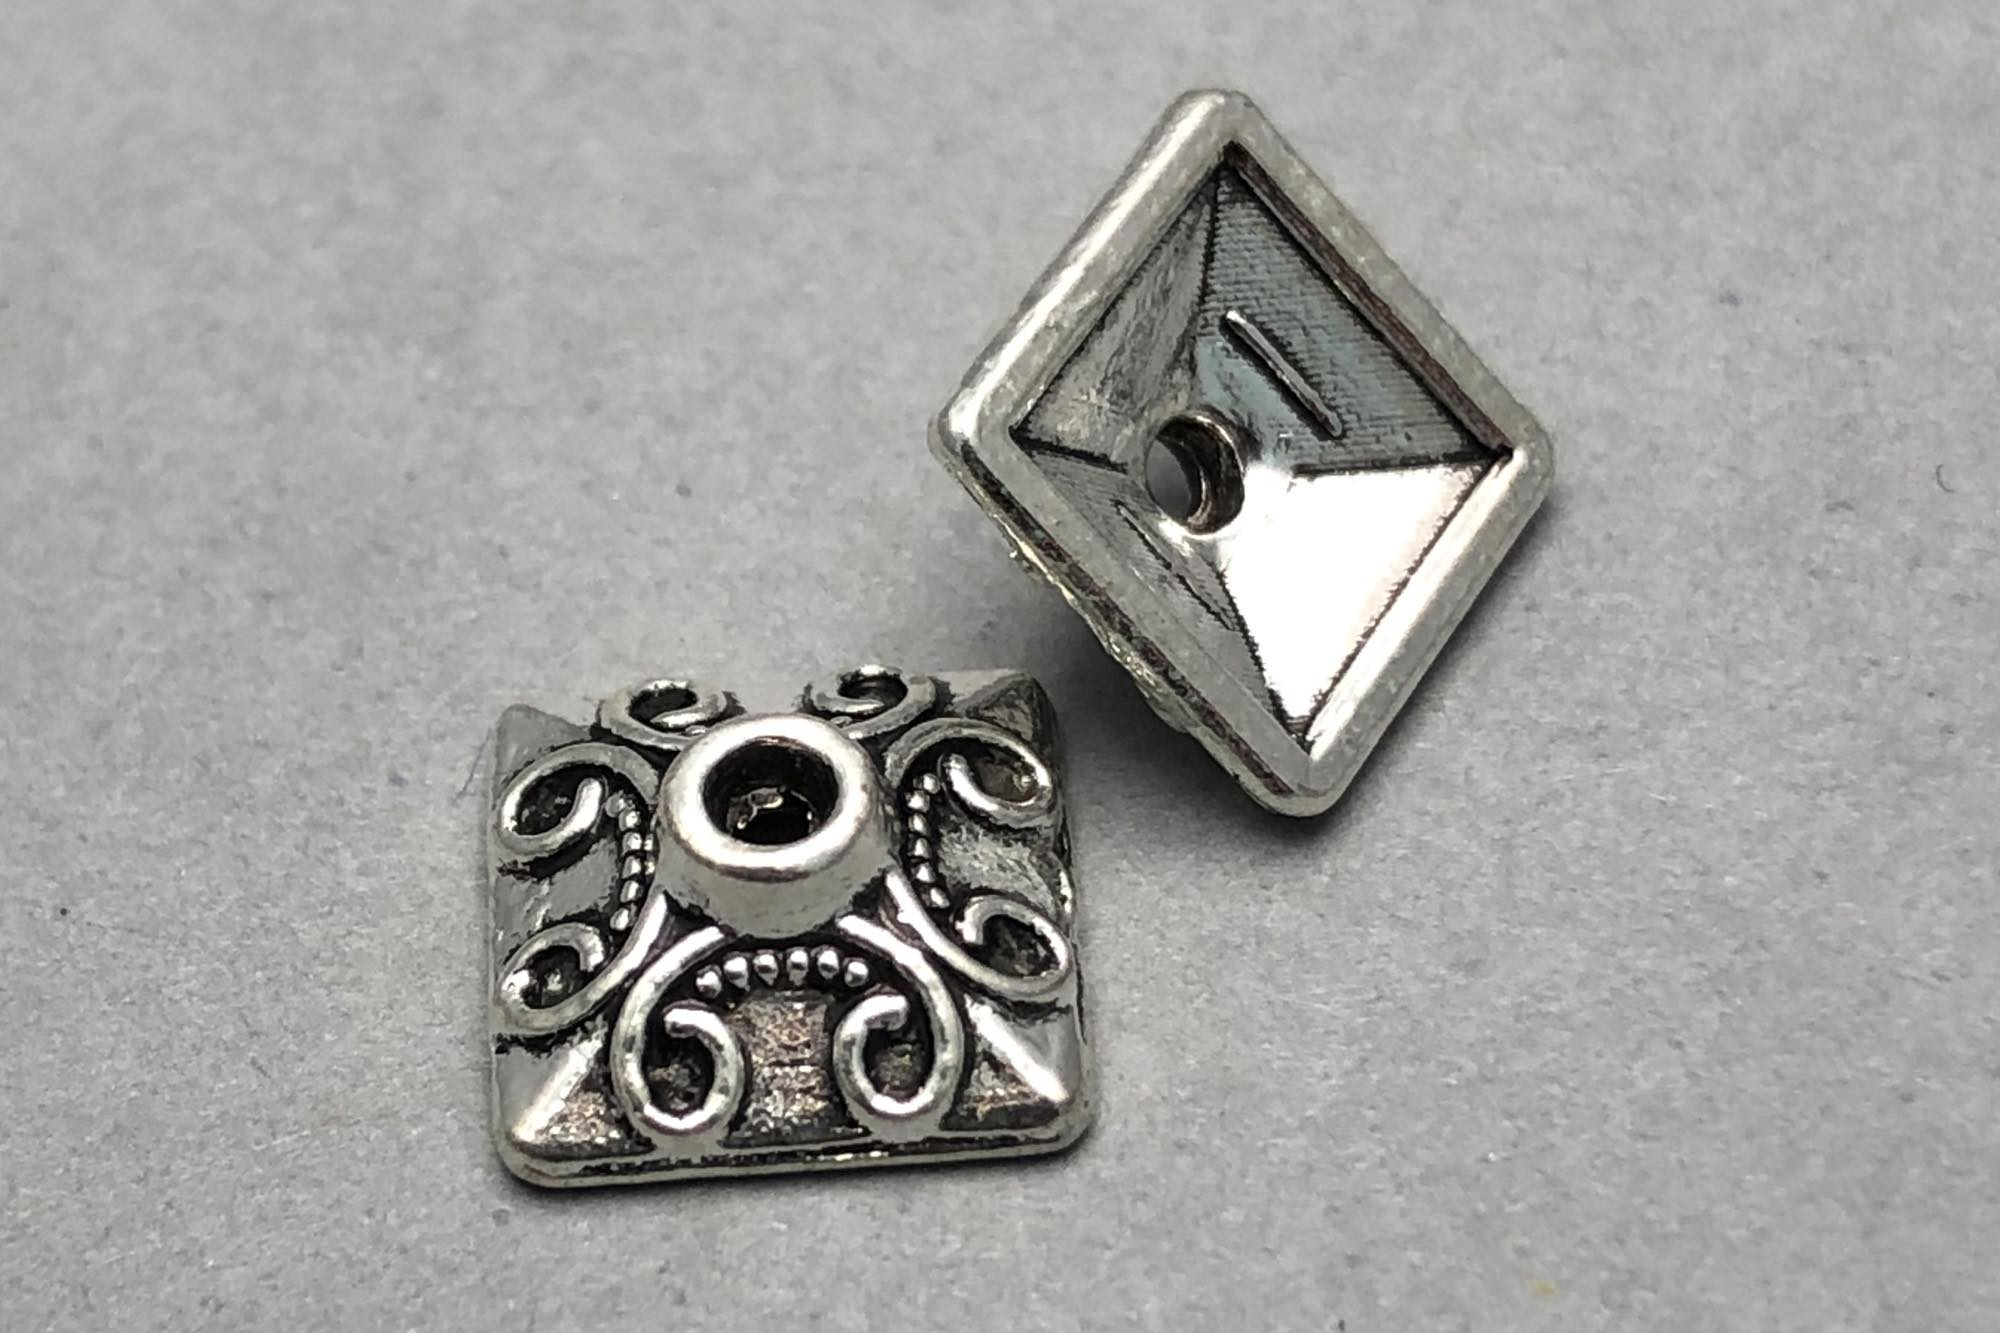 Antique Silver Plated Square Bead Cap 10x4mm, 1.2mm hole